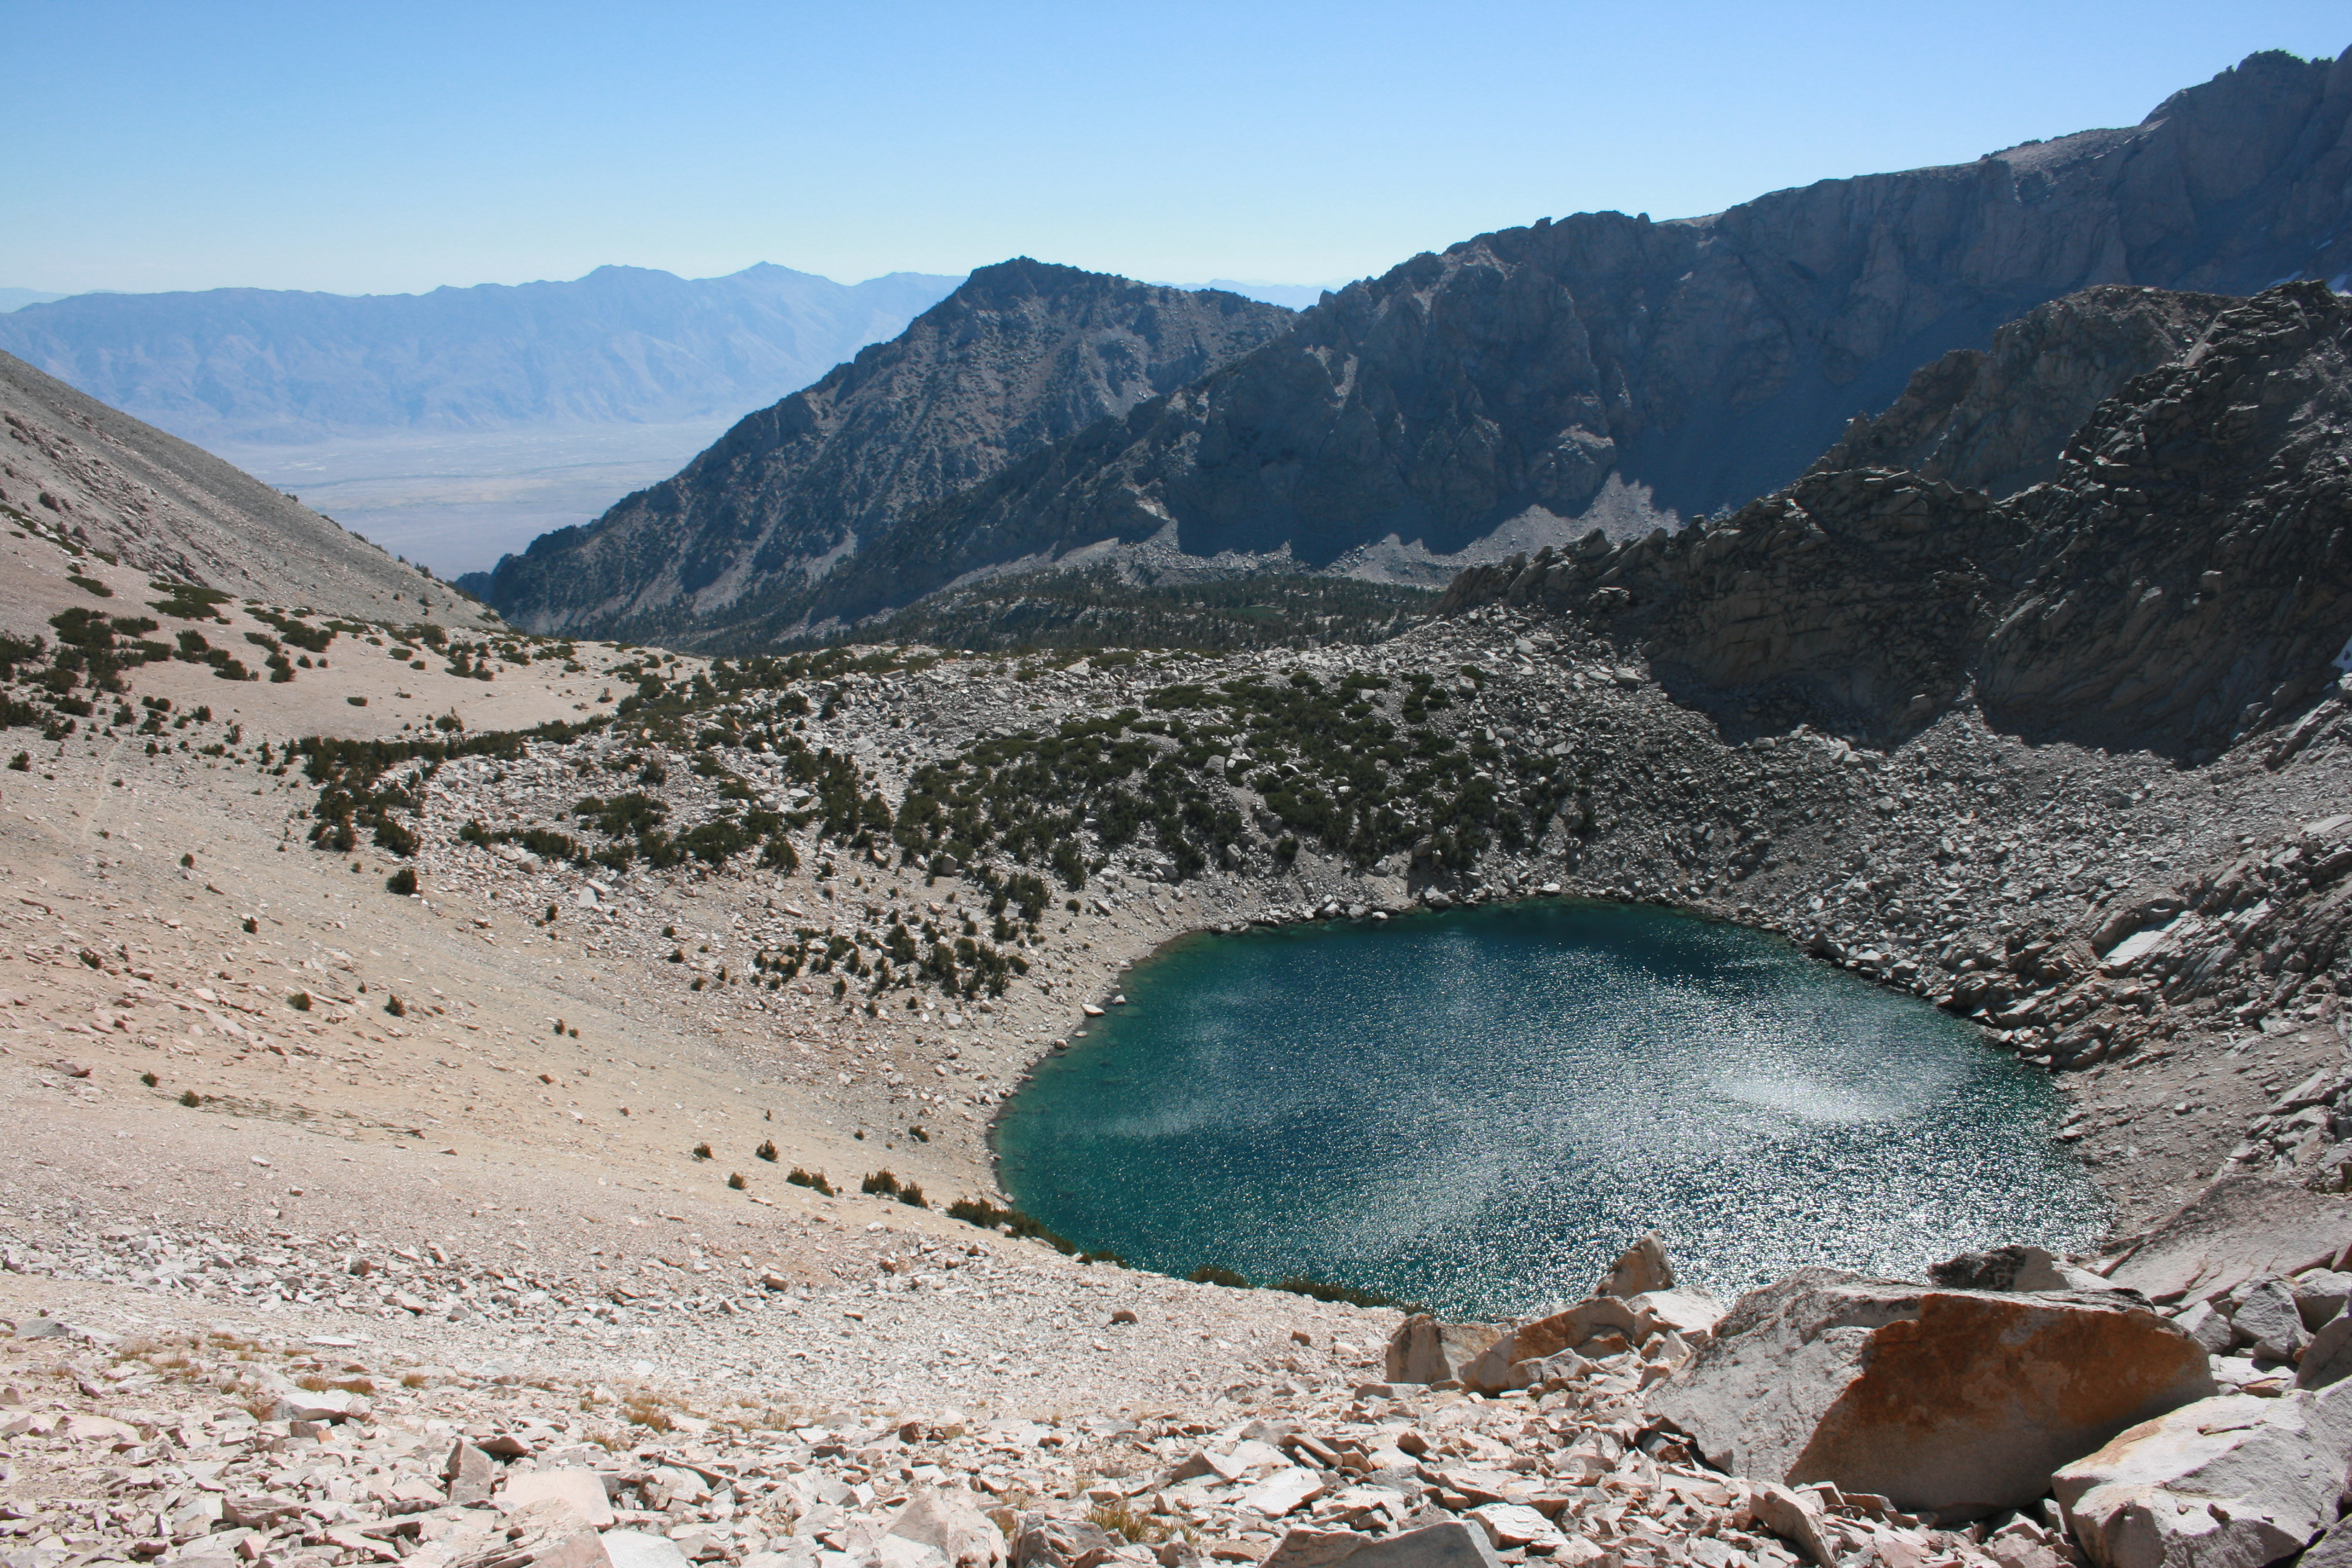 Big Pothole Lake and Onion Valley from Kearsarge Pass